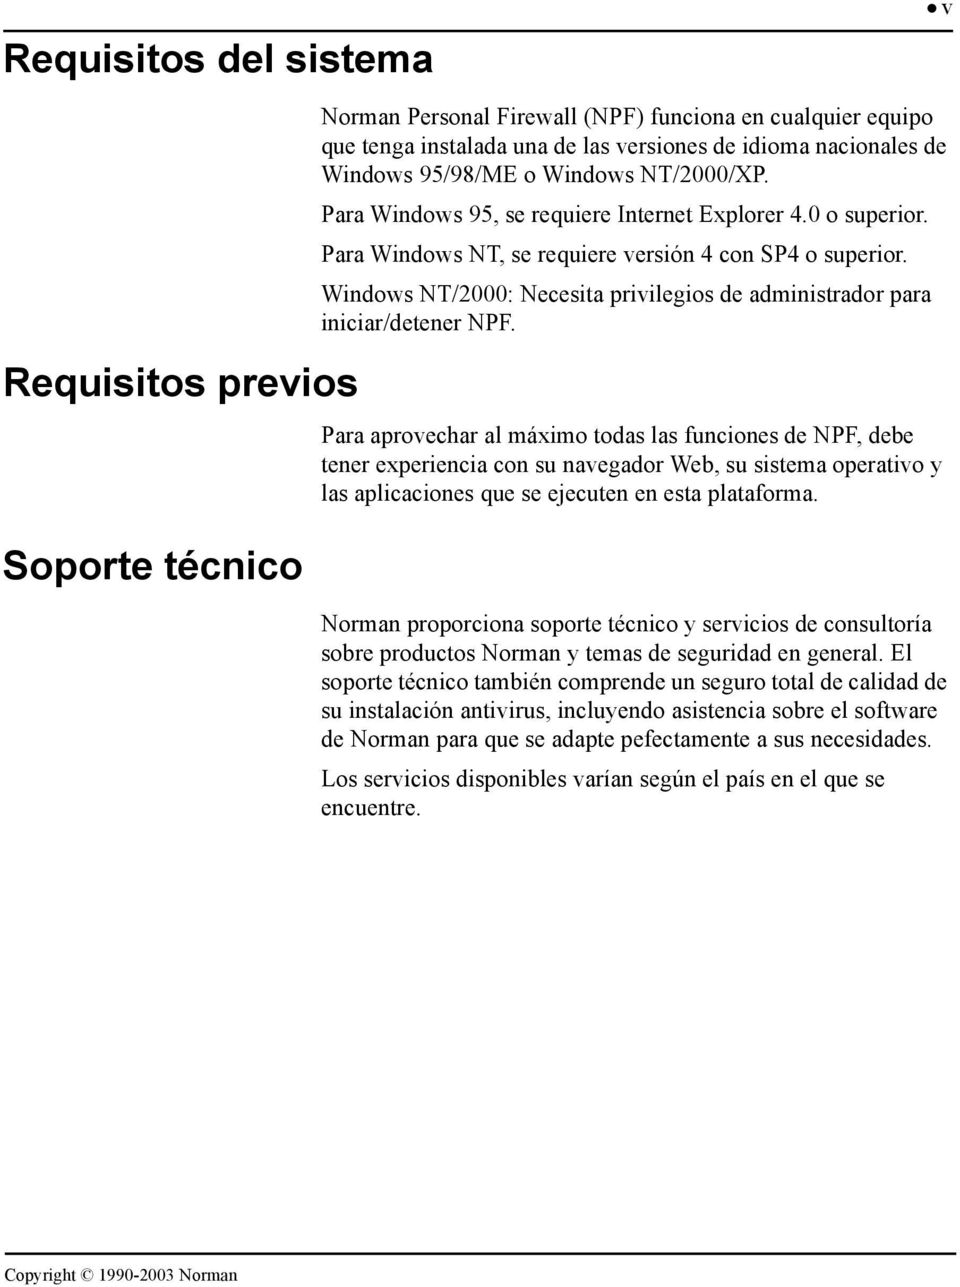 Para Windows 95, se requiere Internet Explorer 4.0 o superior. Para Windows NT, se requiere versión 4 con SP4 o superior.